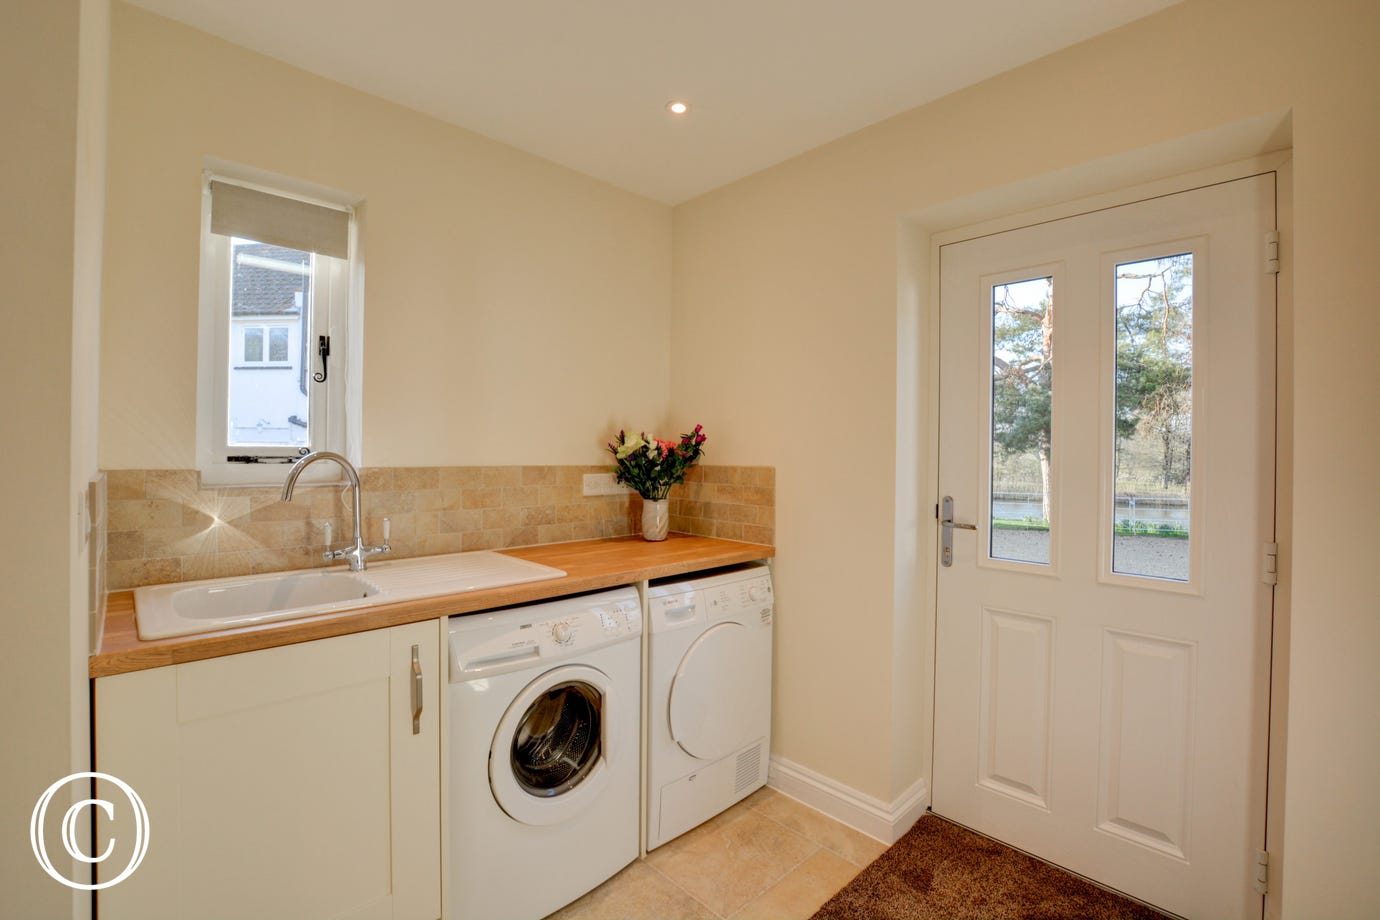 Utility Room with washing machine and tumble drier